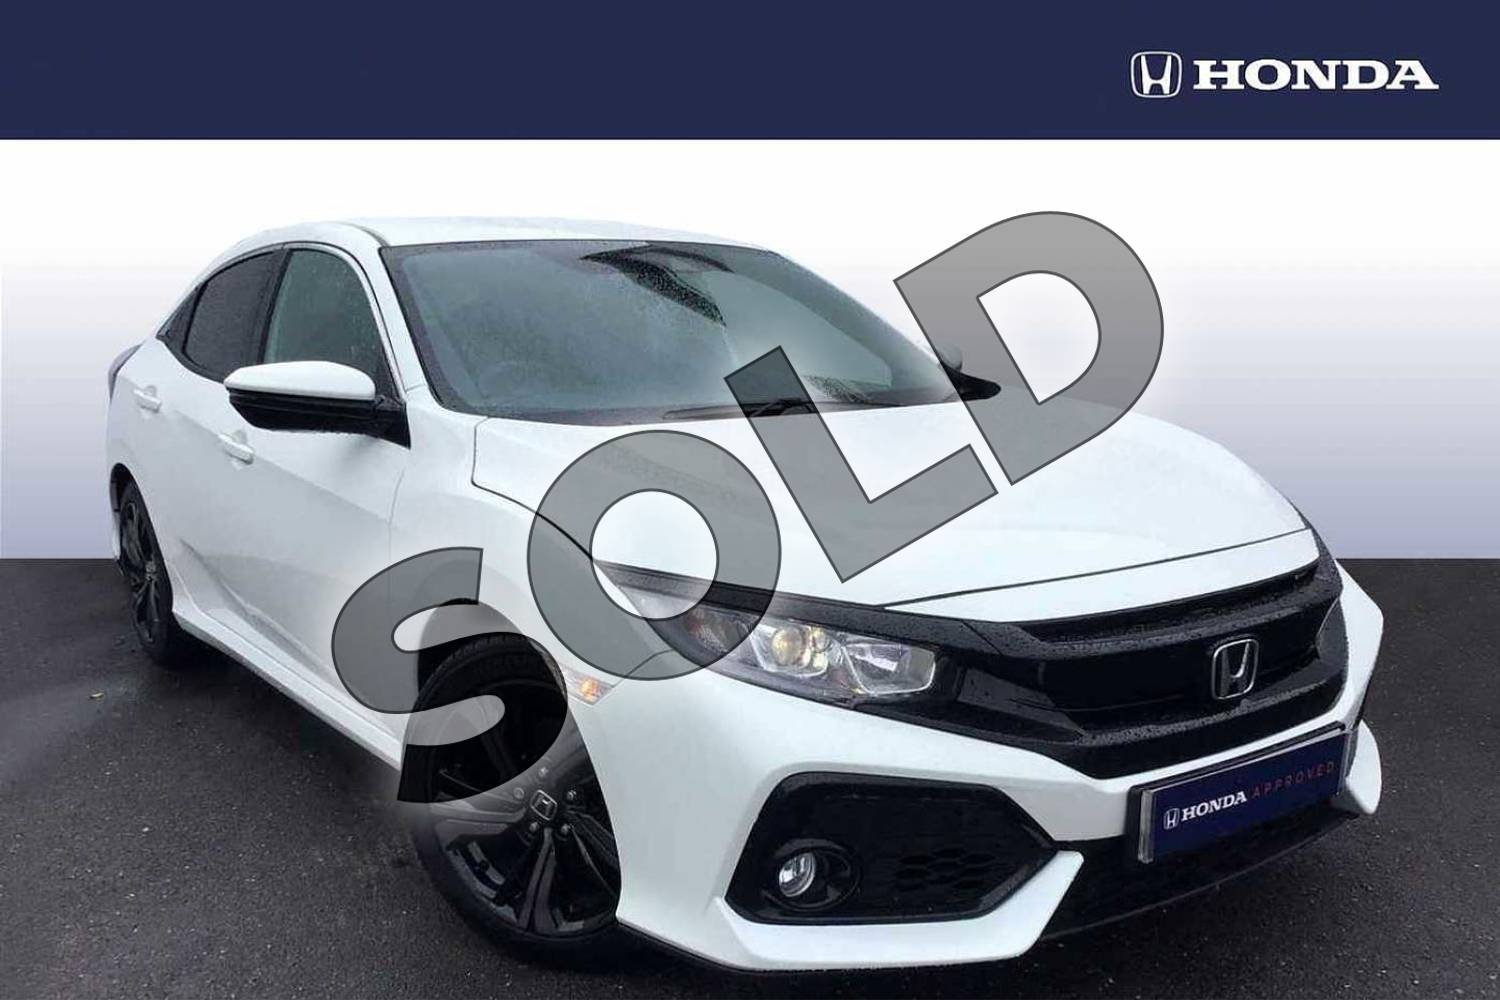 2018 Honda Civic Hatchback 1.0 VTEC Turbo SR 5dr in White Orchid at Listers Honda Solihull